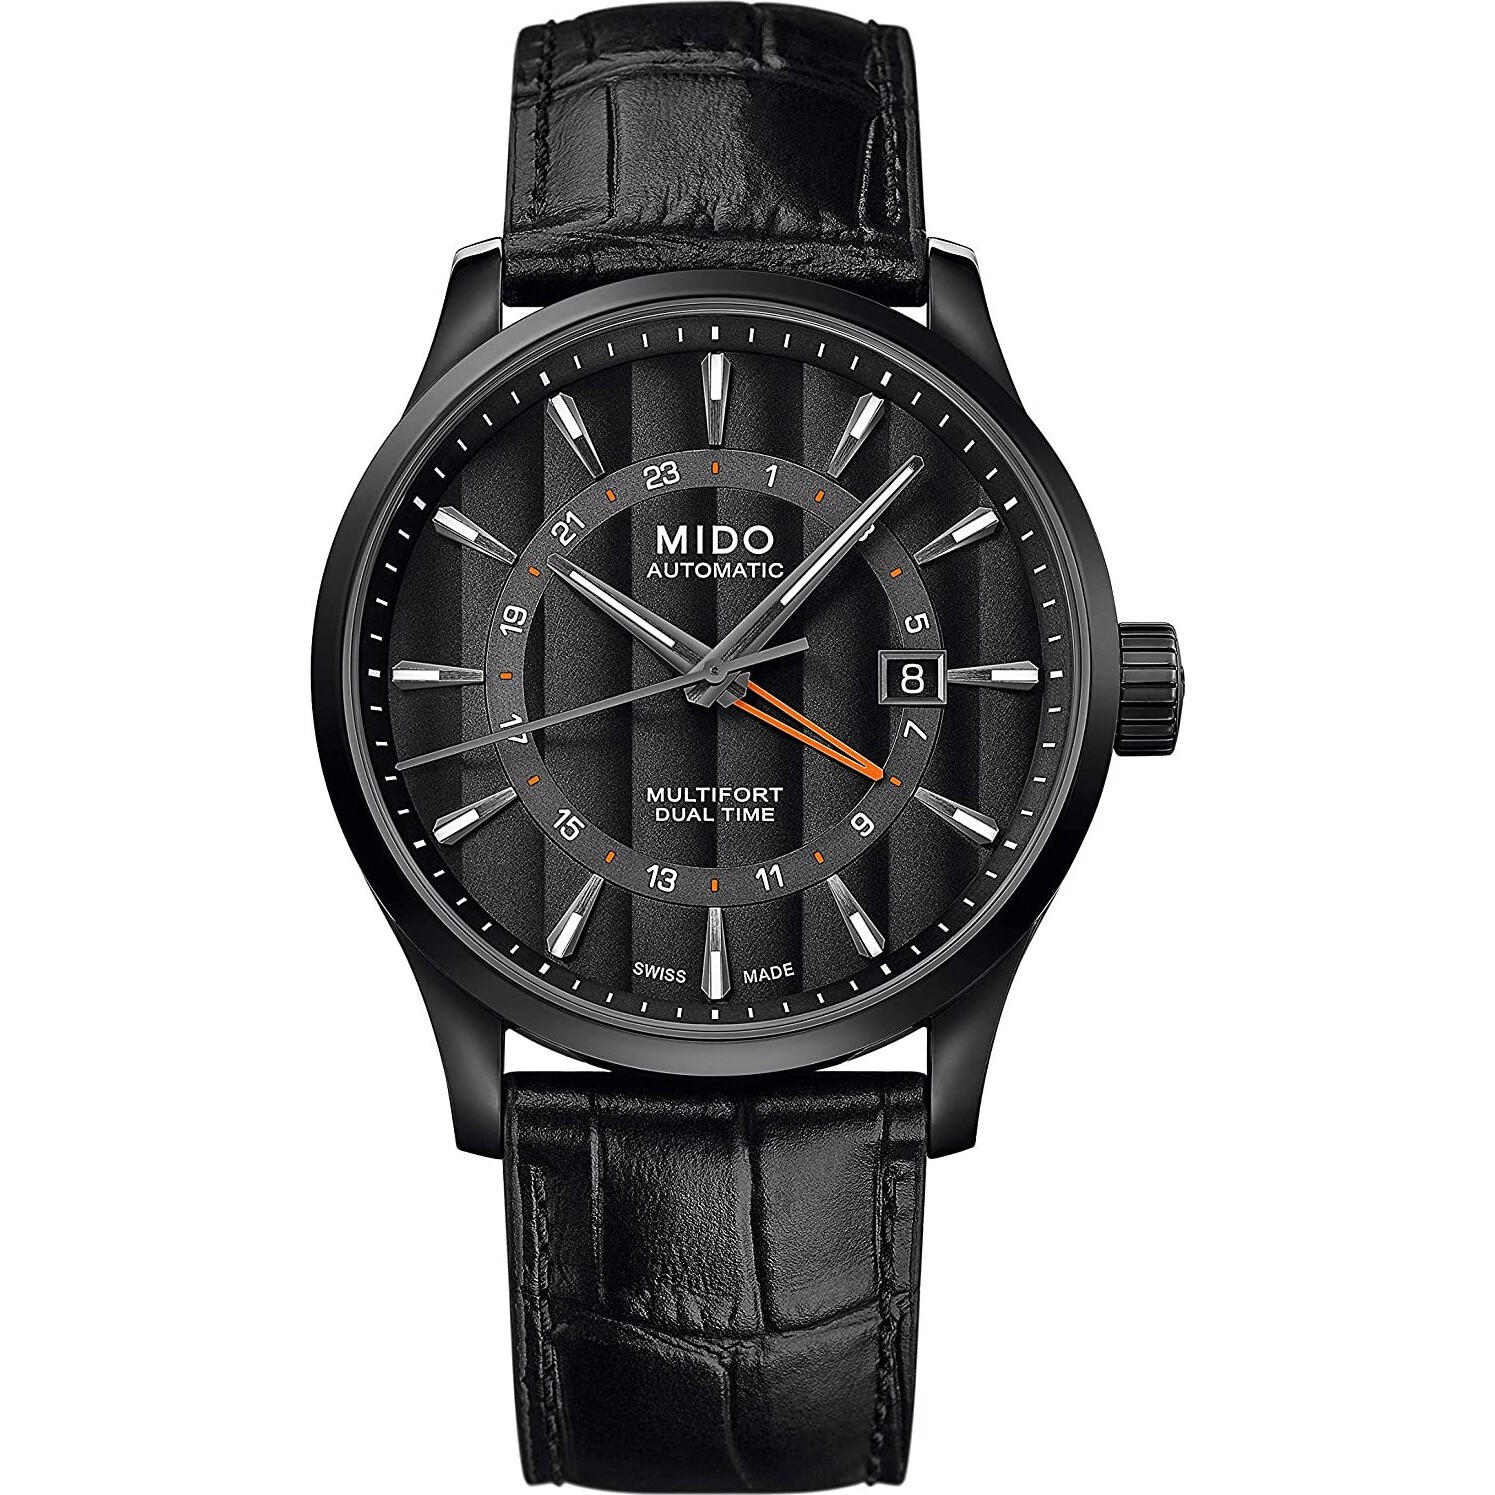 Mido Multifort M038.429.36.051.00 Dual Time 42mm